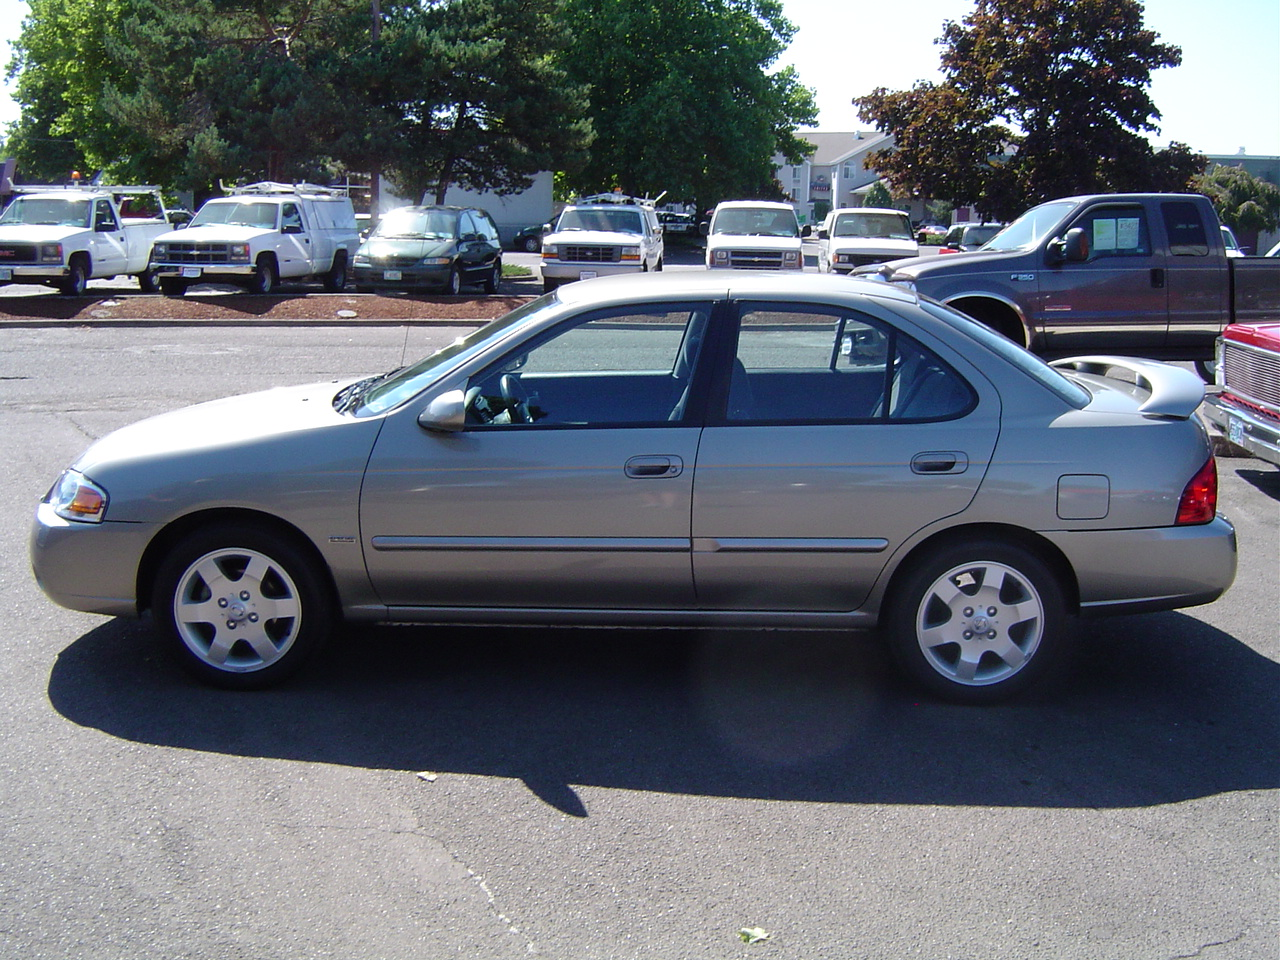 2005 Nissan Sentra Photos, Informations, Articles ...